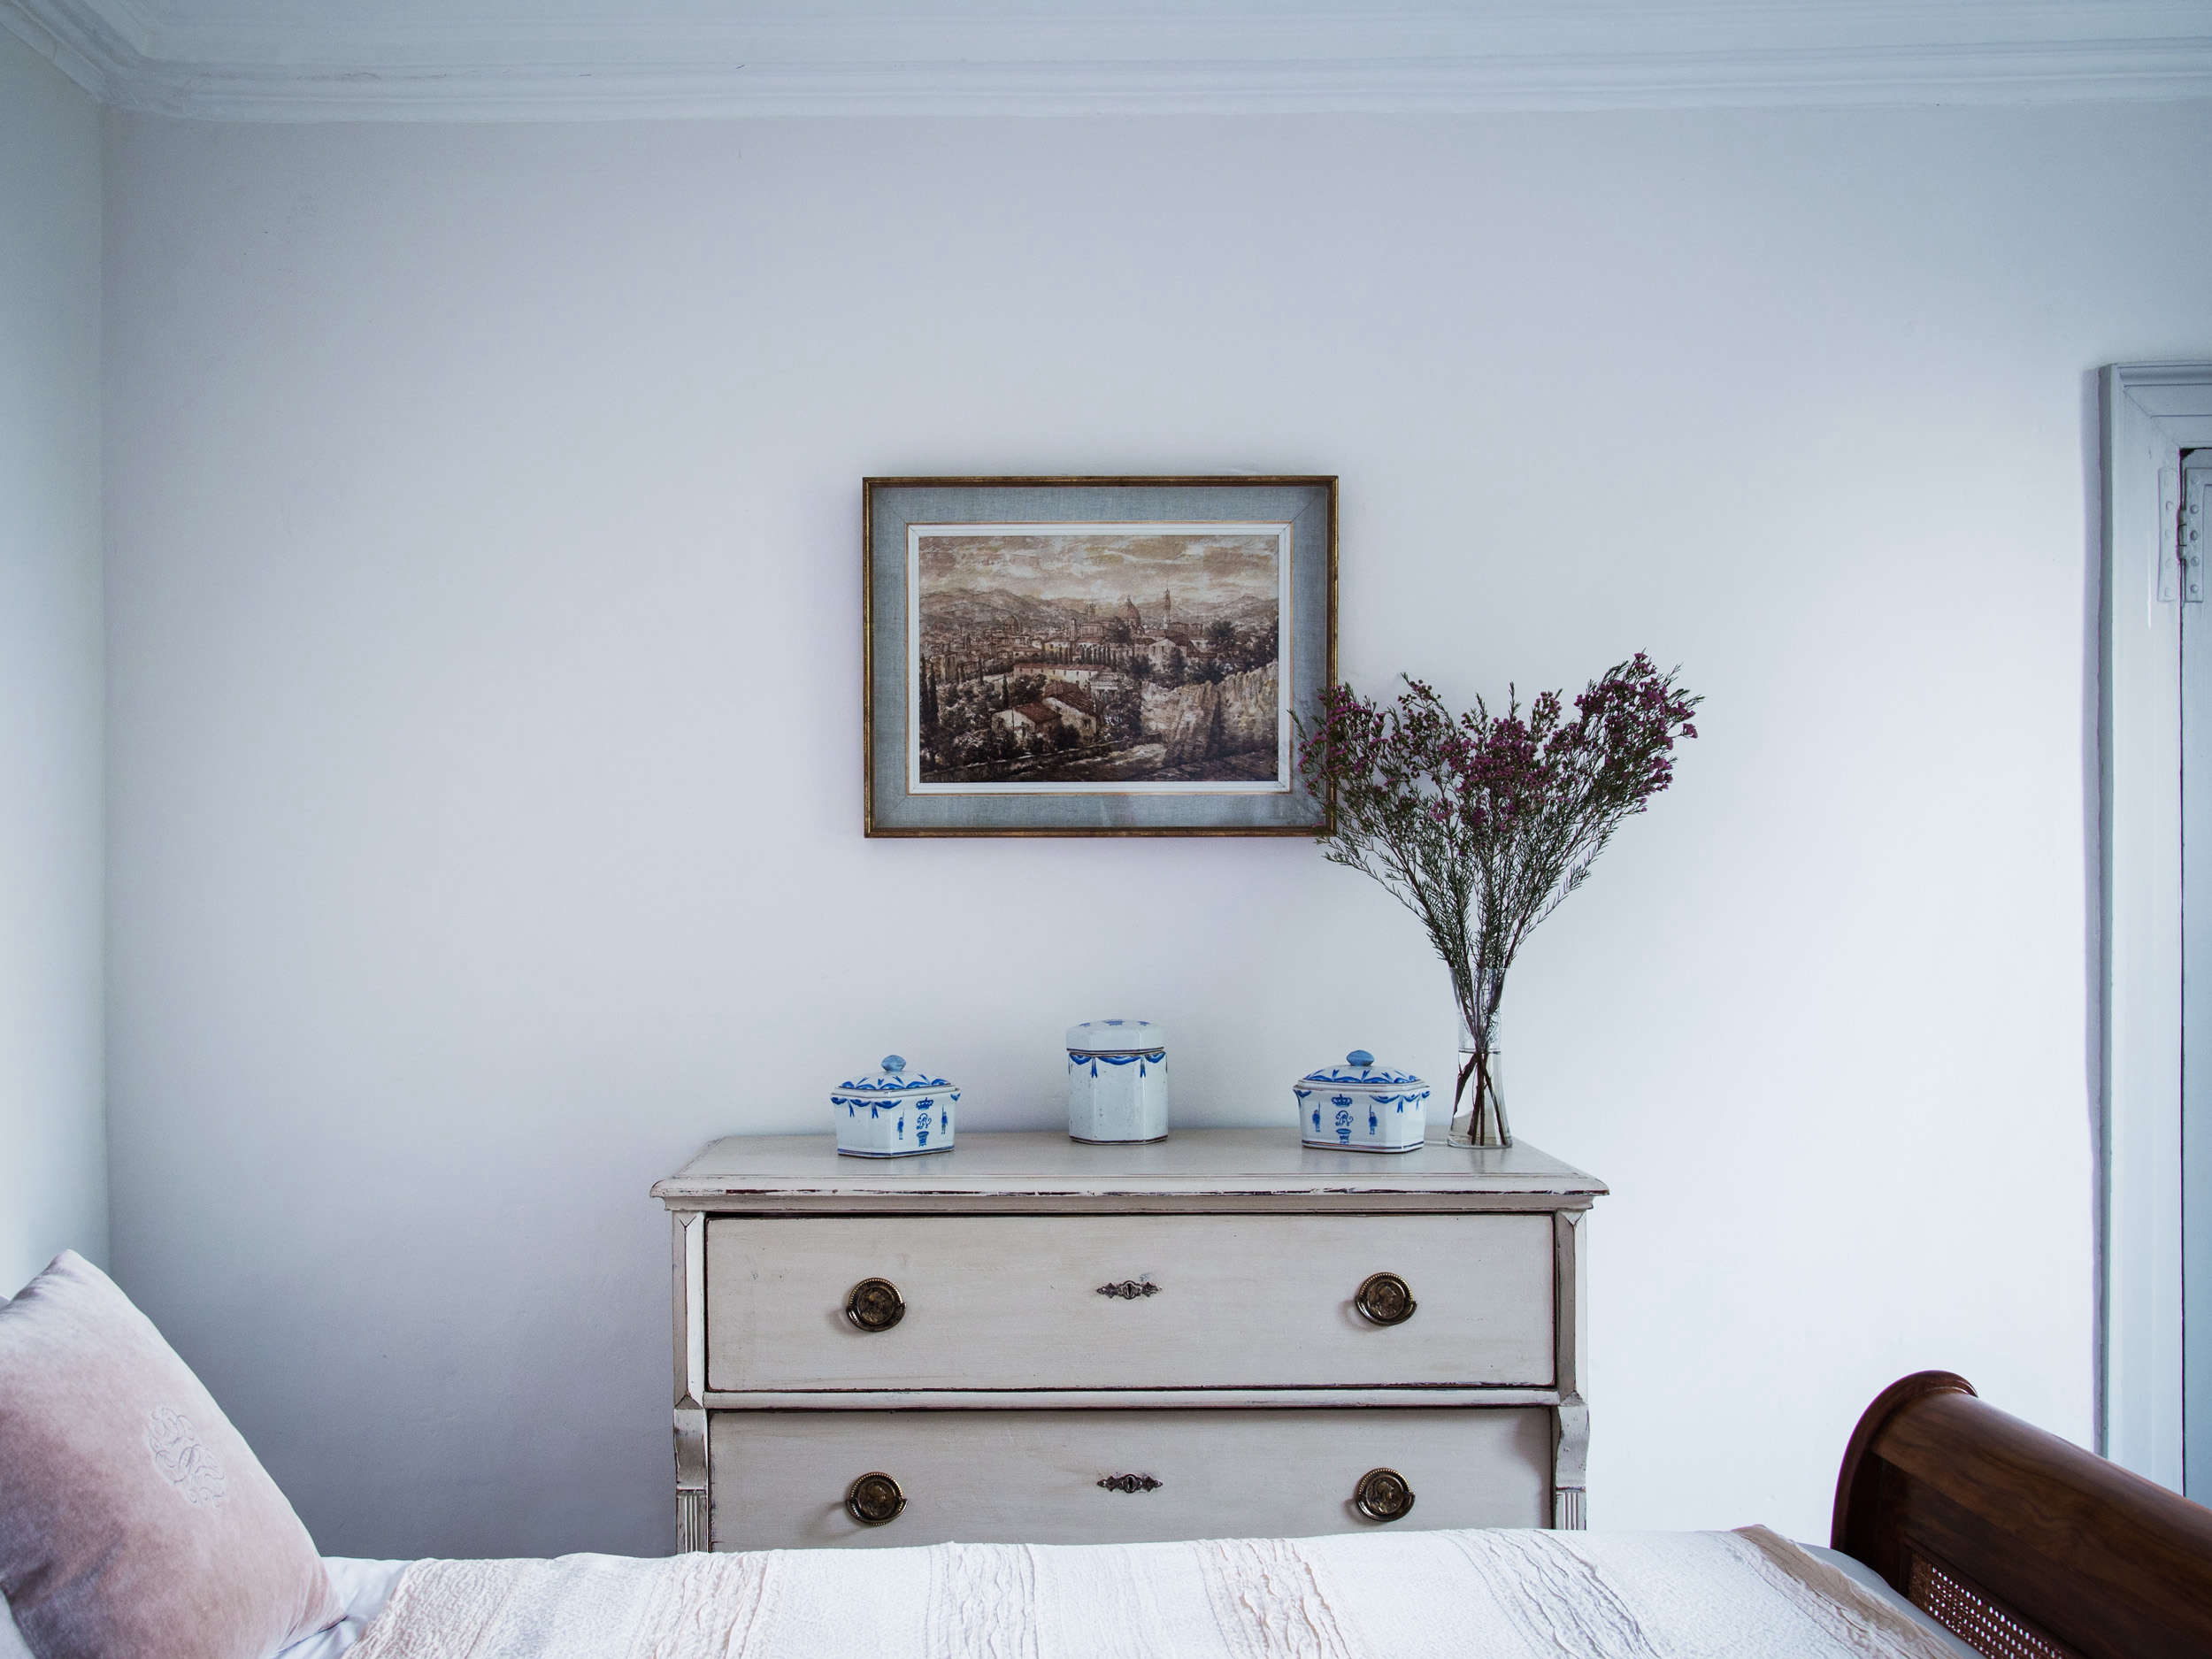 Chest of Drawers in Blue Dorset House by Mark Lewis, Photo by Rory Gardiner